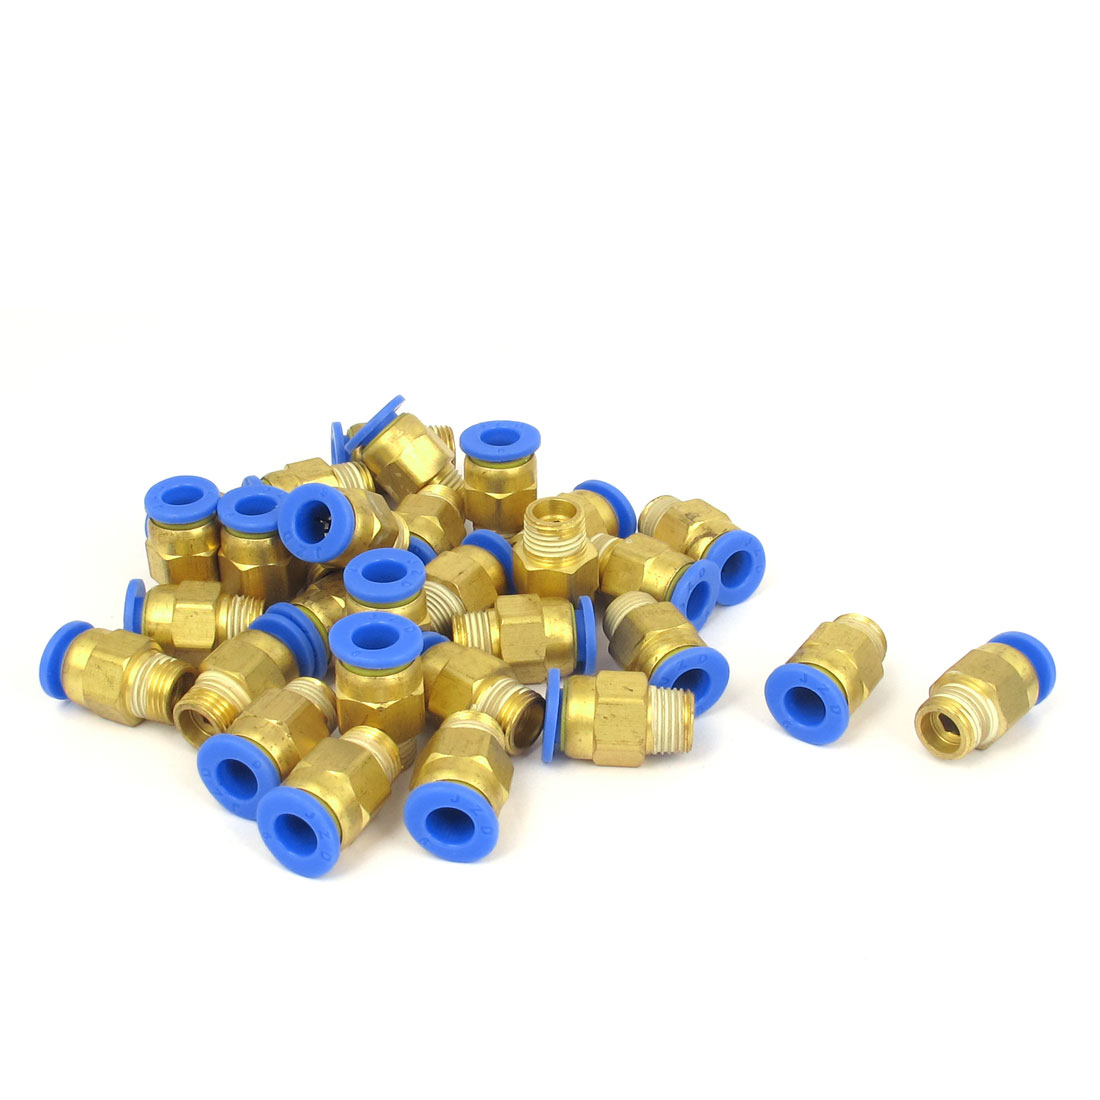 30 Pcs 1/8BSP Male Threaded 6mm OD Tube Straight Push in Quick Connect Fittings